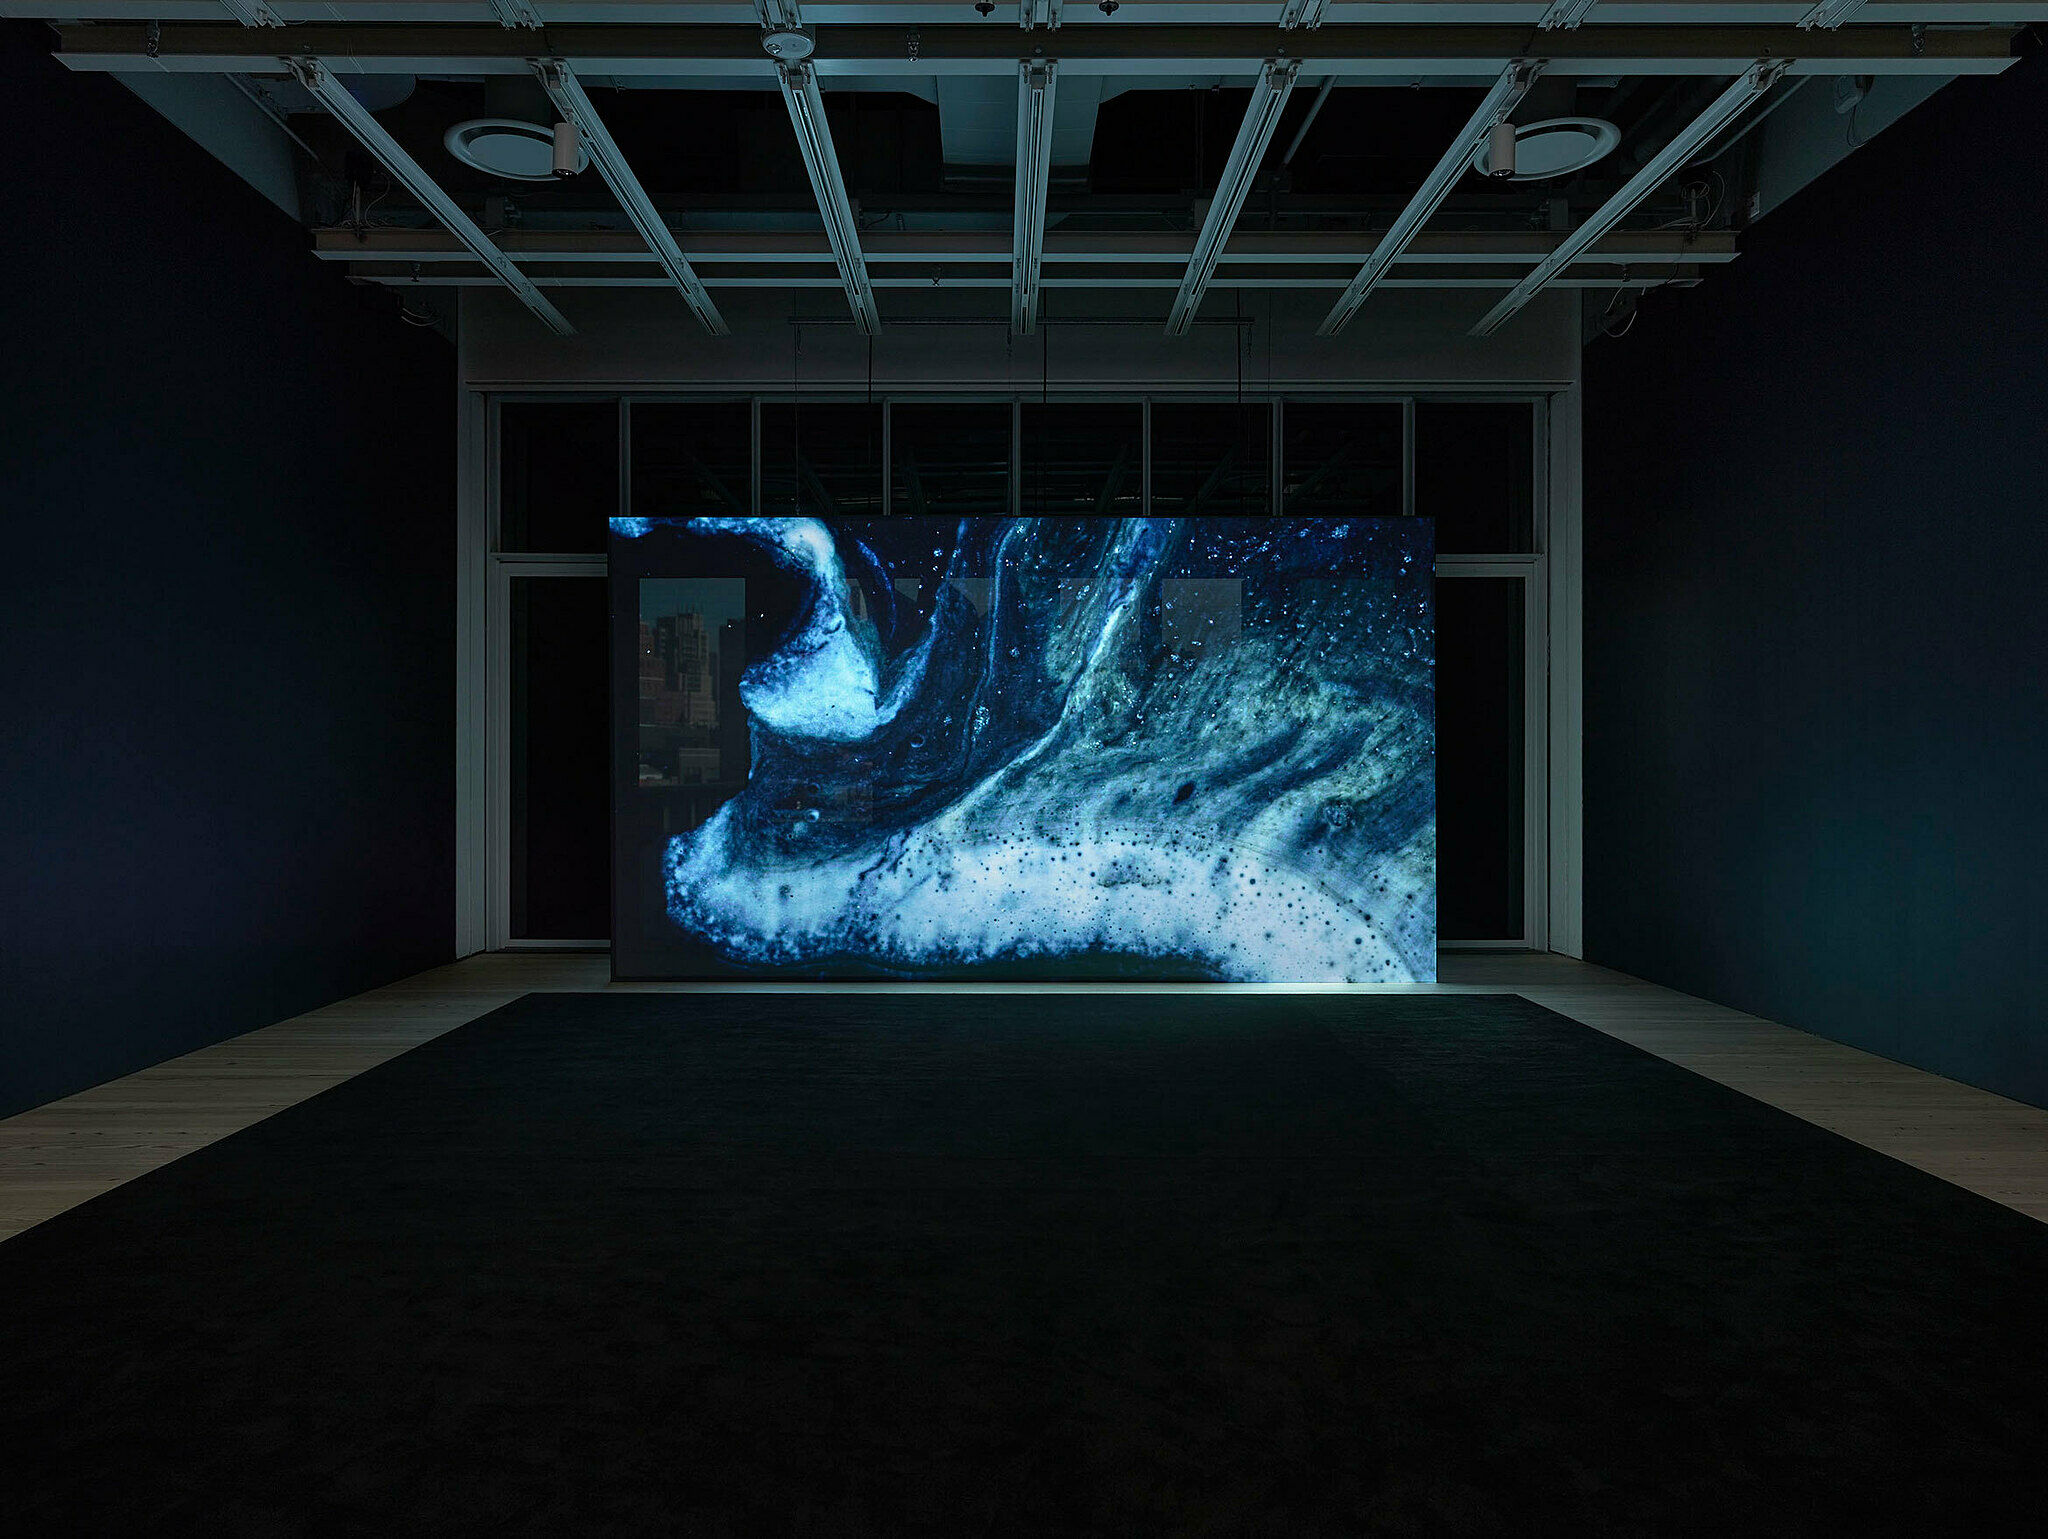 A darkened gallery with a large abstract artwork on the wall.